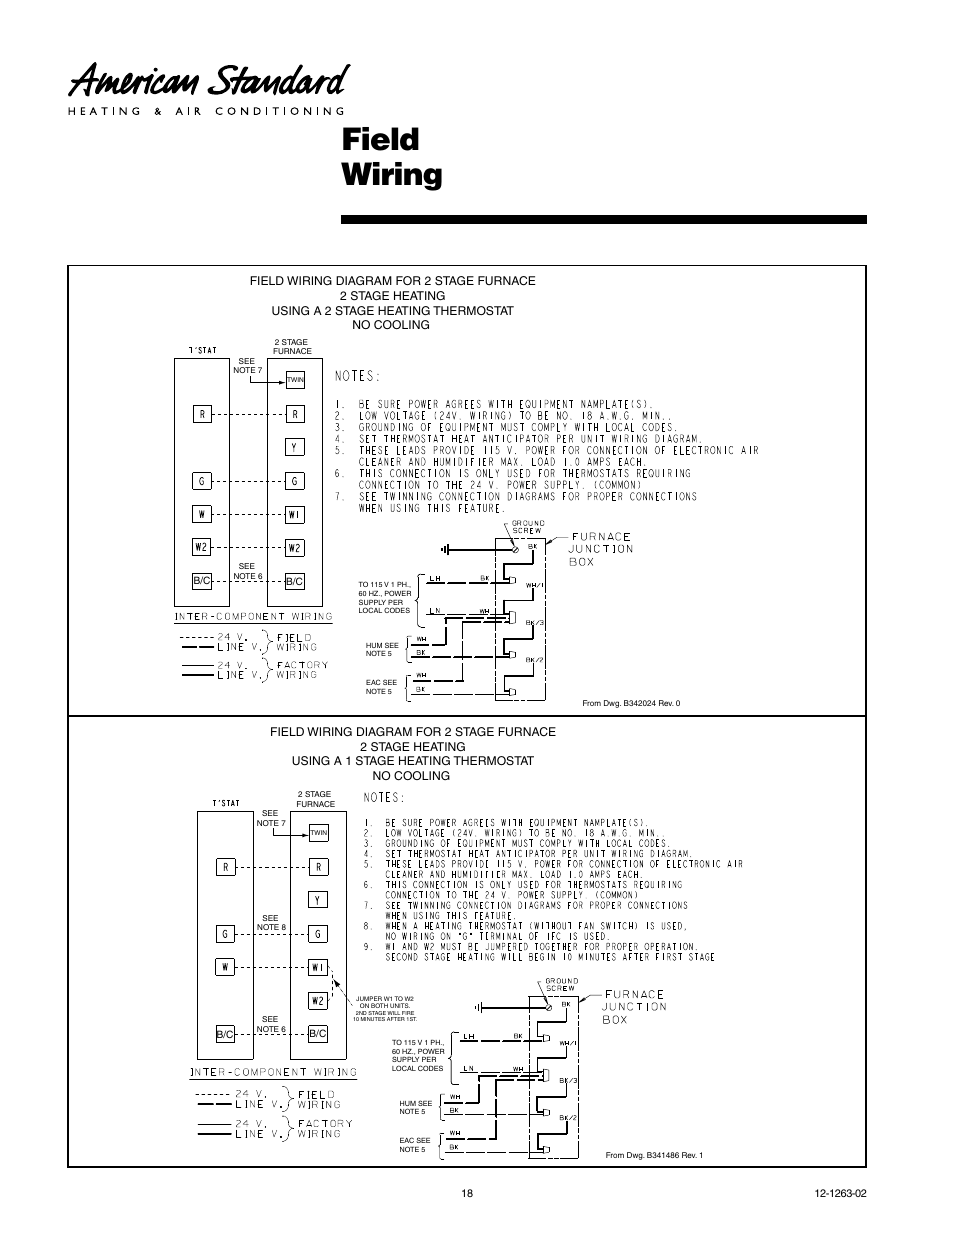 american standard freedom 80 page18 field wiring american standard freedom 80 user manual page 18 24 2-stage furnace thermostat wiring diagram at bakdesigns.co